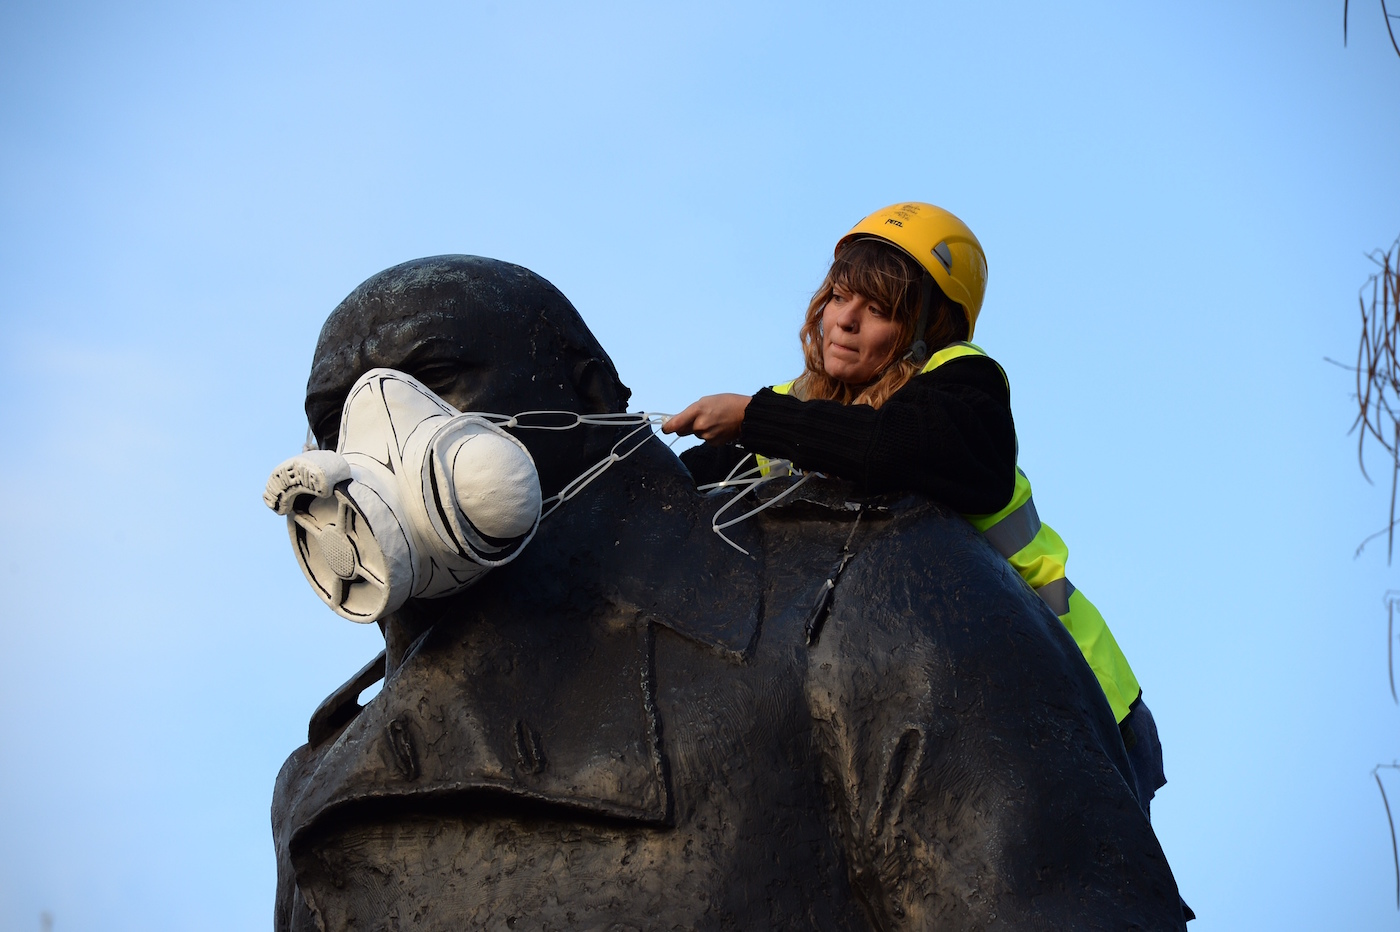 A Greenpeace activist fits the statue of Churchill at Parliament Square with an emergency face mask (photo © Chris Ratcliffe / Greenpeace)